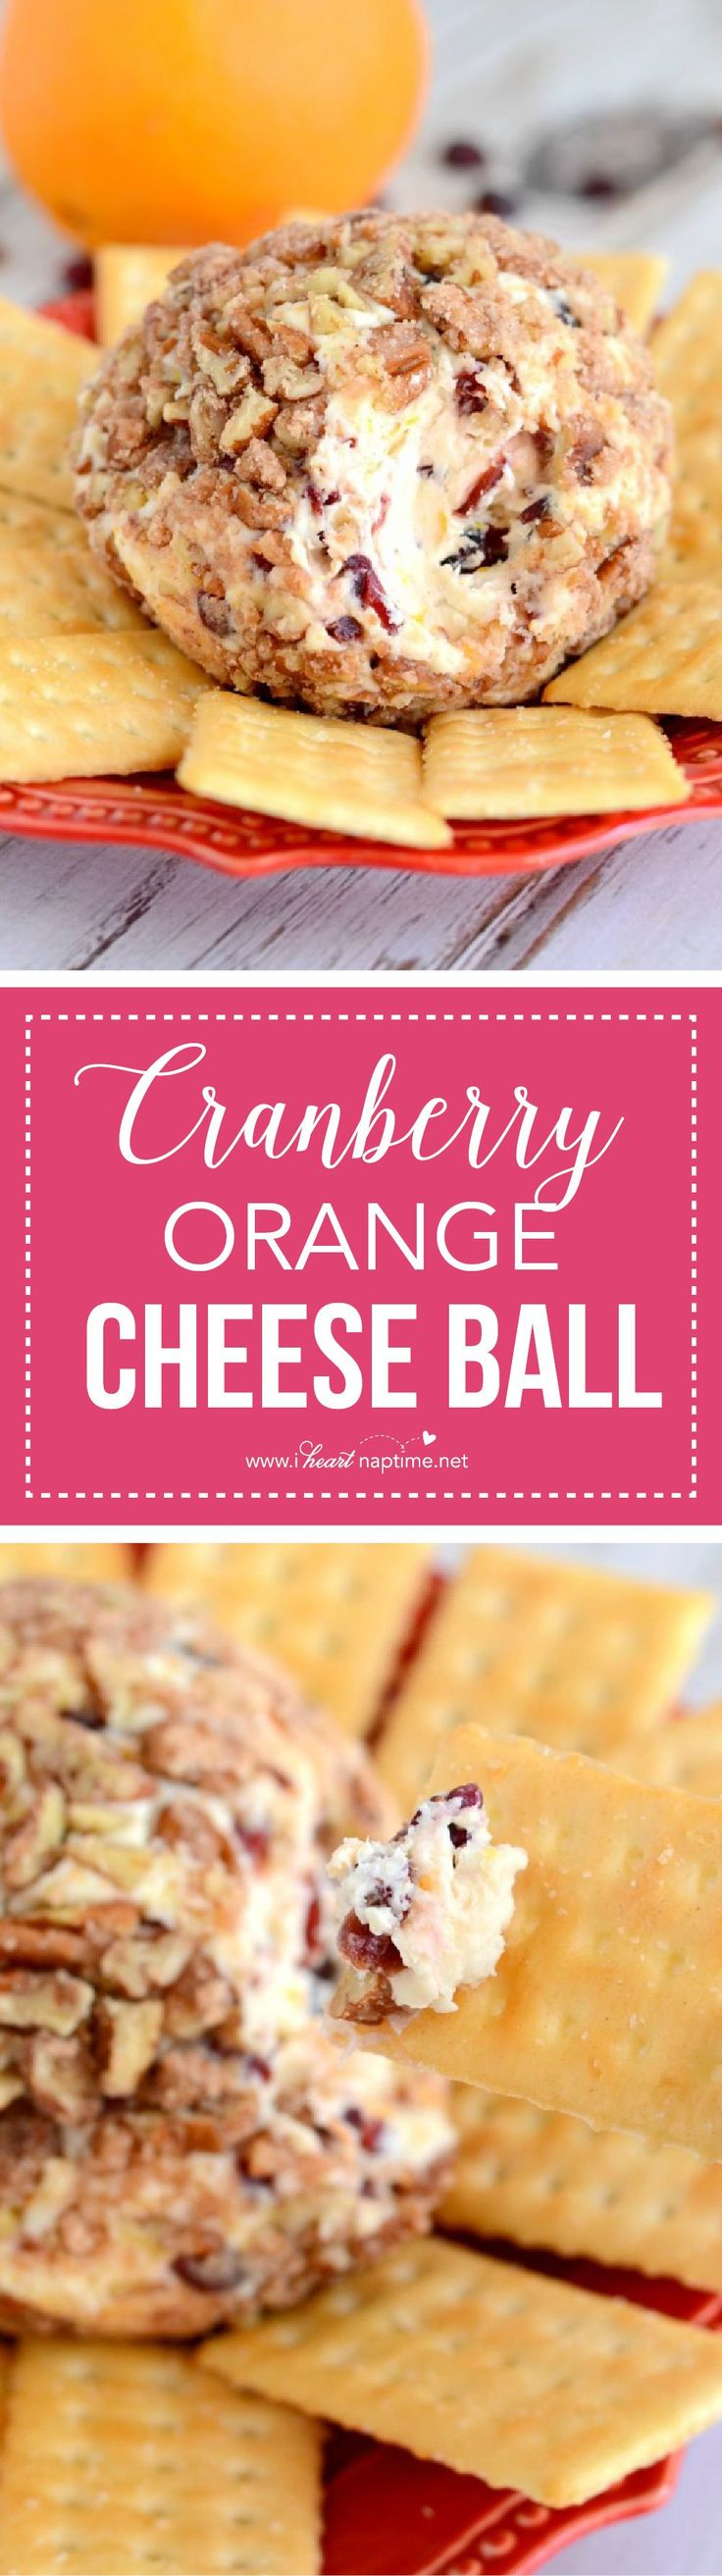 Best 2108 Appetizers images on Pinterest   Parties food, Tomatoes ...